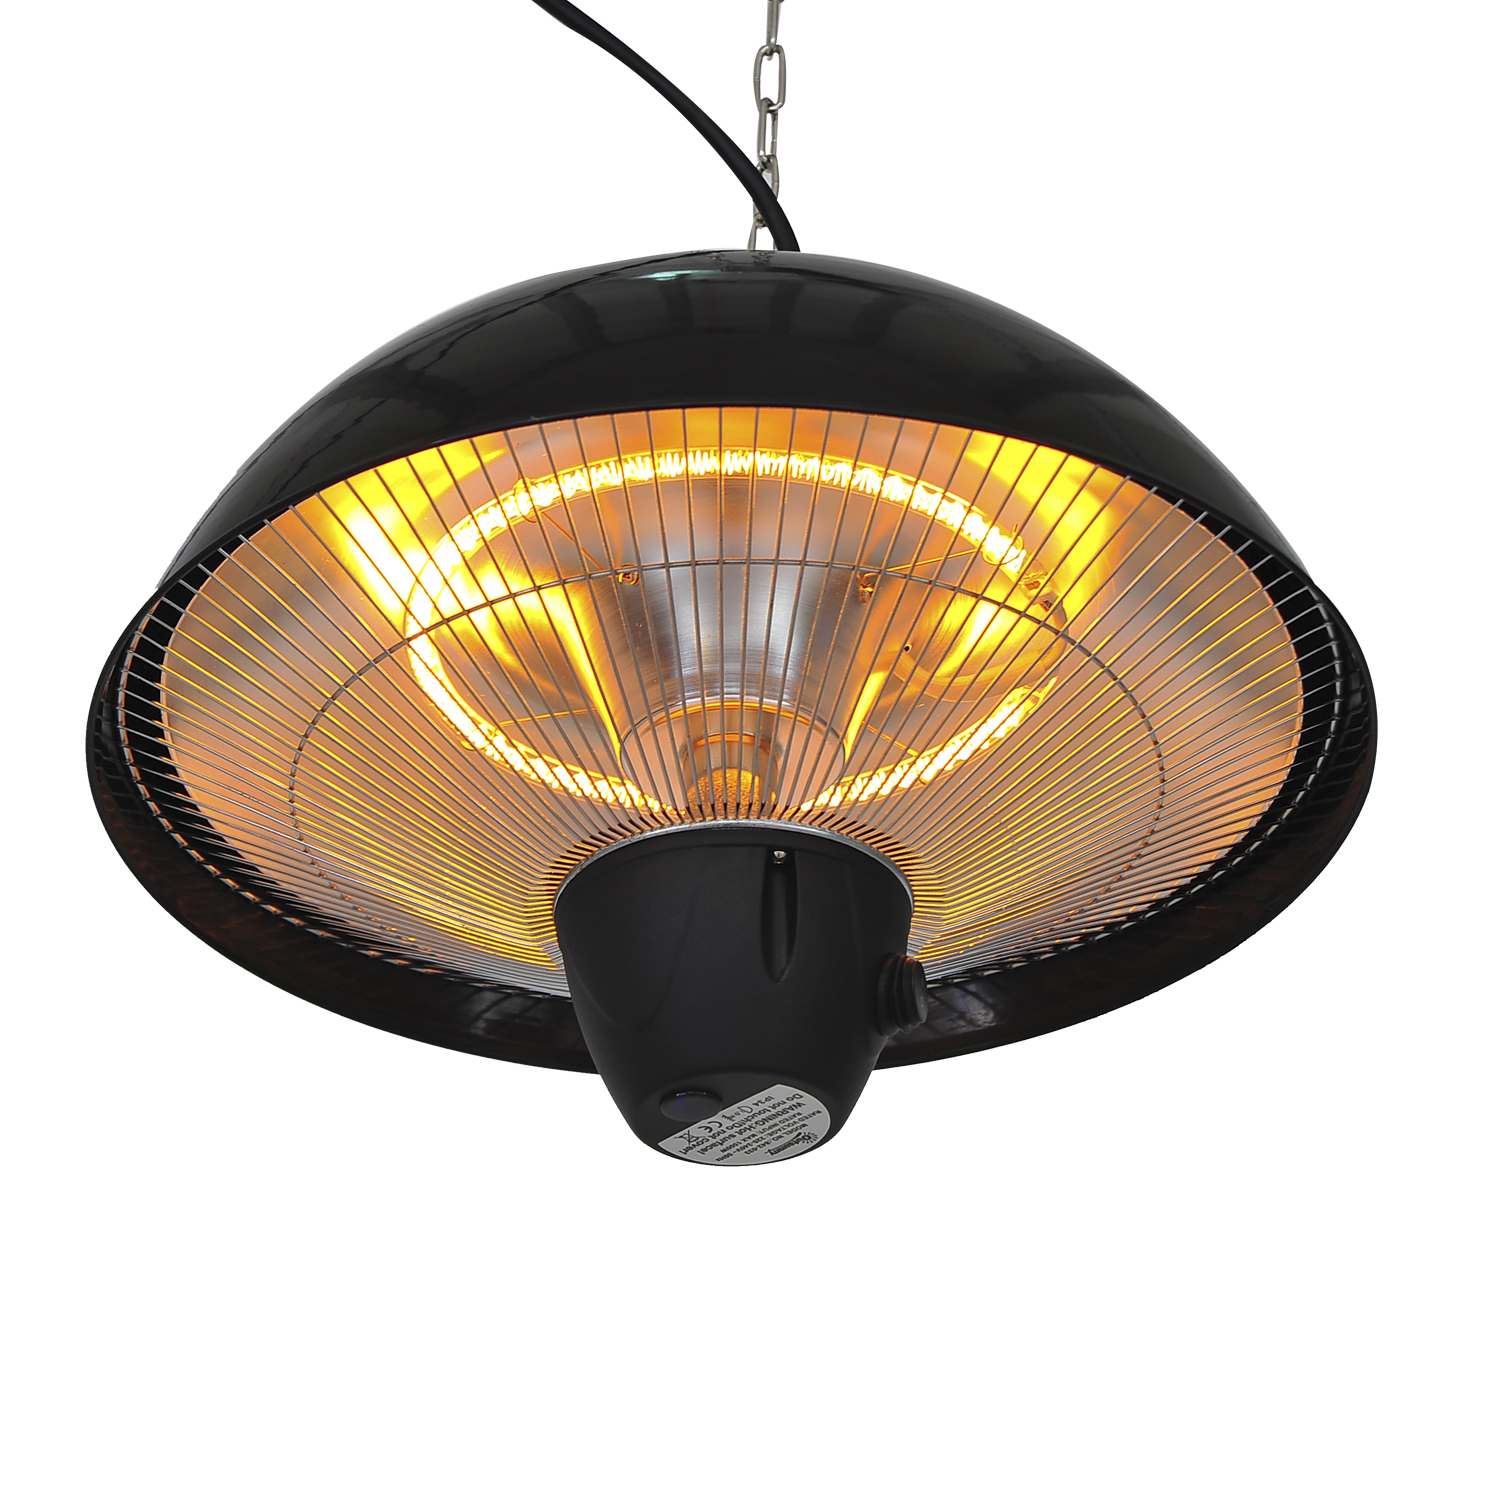 Image of £52.99 Outsunny Ceiling Mounted Electric Patio Heater-Black / 1500 W Outdoor Aluminium Halogen Hanging Heater Light with Remote Control - Black Heat 1.5KW Aluminum Garden 842-033 5055974831896